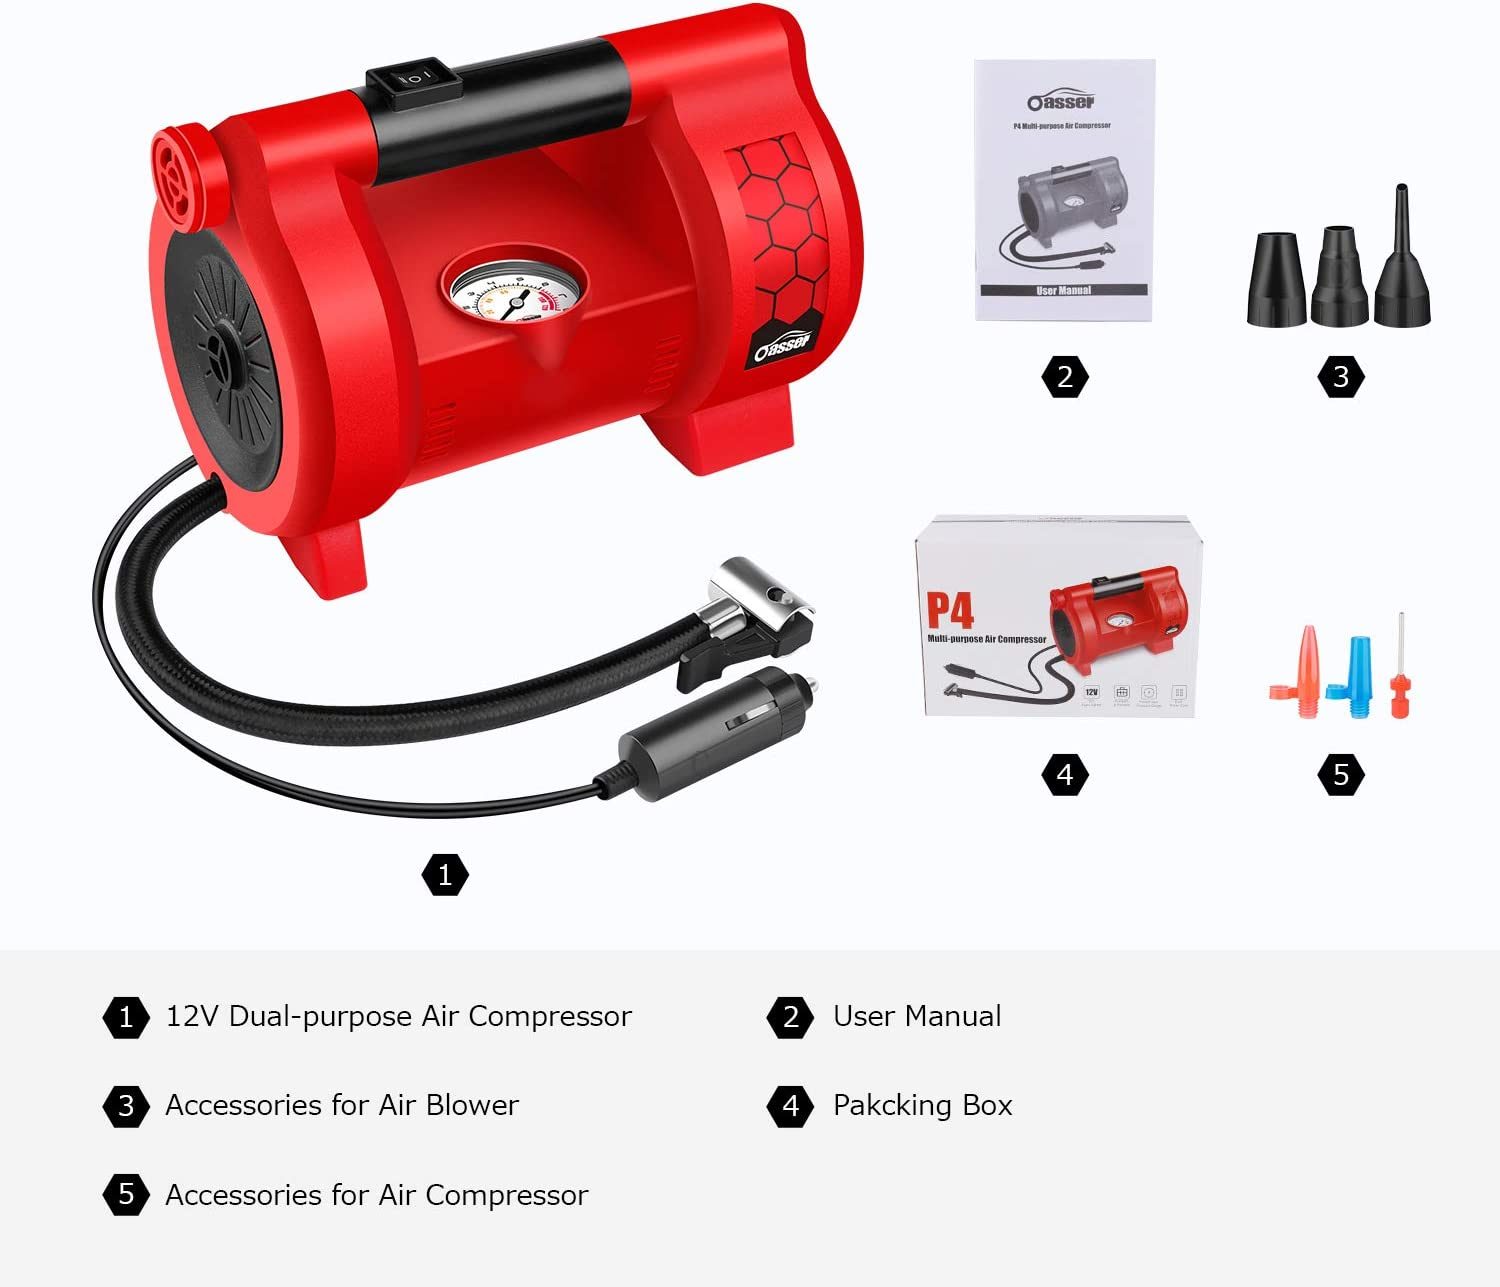 Oasser Air Compressor Tire Inflator Multi-purpose Air Inflator with 6 Nozzles for Cars Bicycles Motorcycles Wheelchairs Air Mattress Toys and Other Inflatables 12V DC 120PSI P4